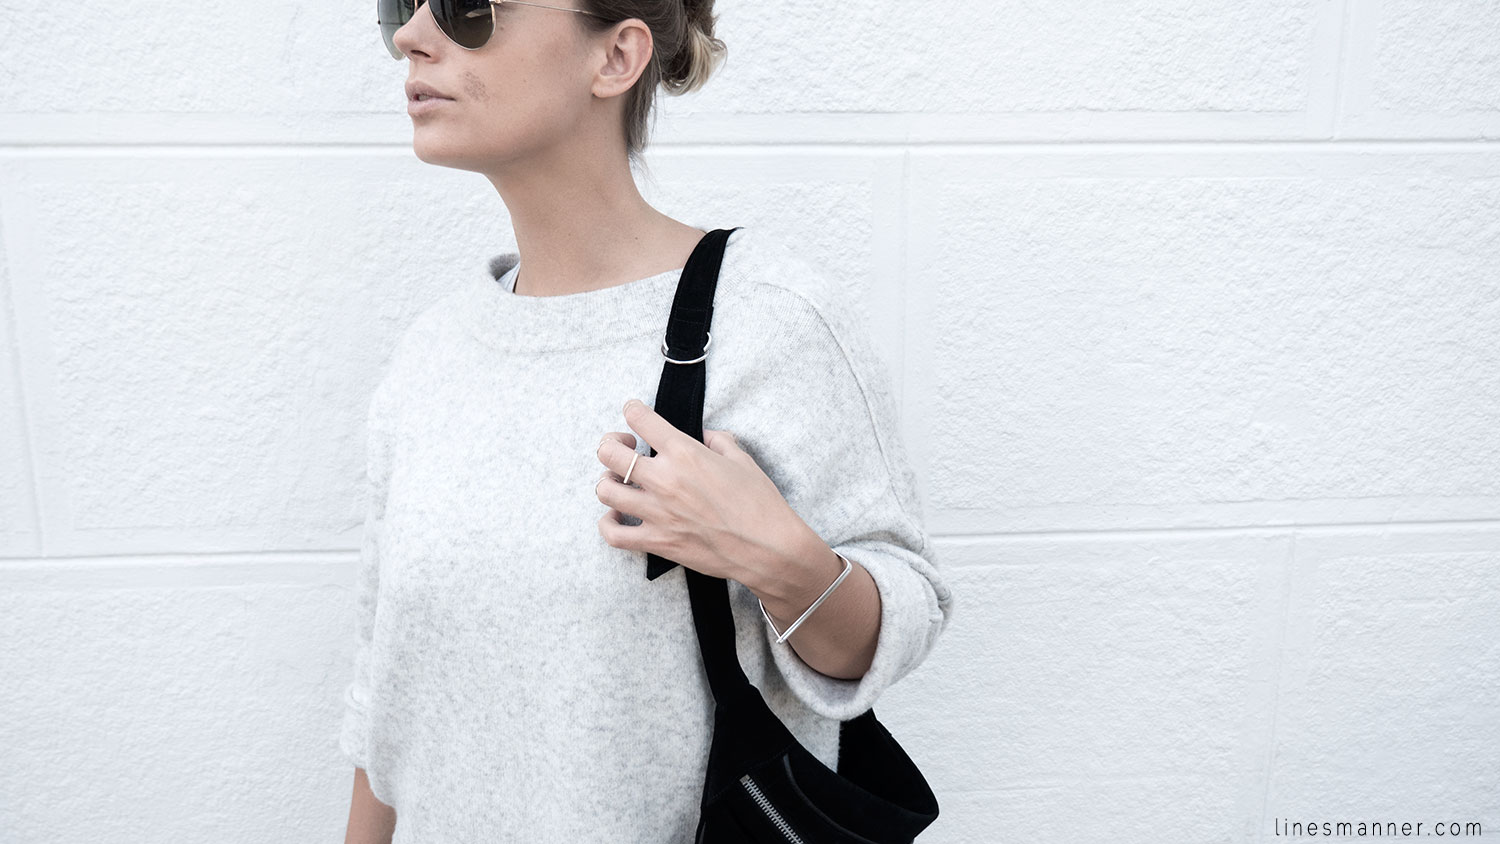 Lines-Manner-Fashion-Collaboration-The_Demeler-Monochrome-Grey_on_Grey-Fresh-Brightly-Outfit-Simplicity-Details-Trend-Minimalist-Flowy-Layering-Sleeves-Sweater_Dress-22